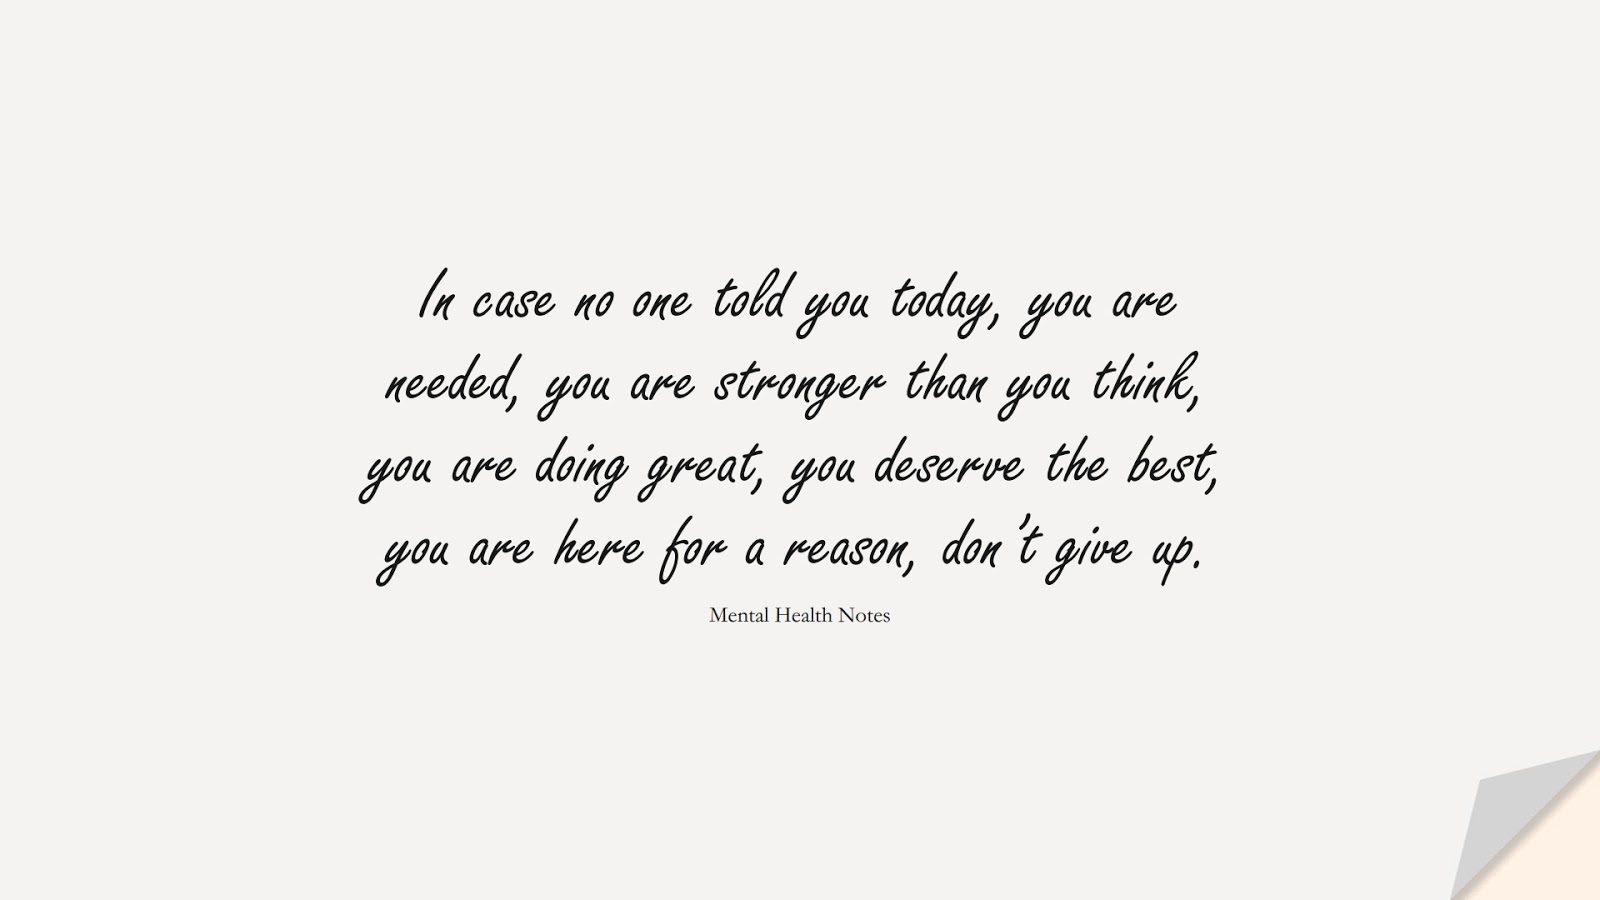 In case no one told you today, you are needed, you are stronger than you think, you are doing great, you deserve the best, you are here for a reason, don't give up. (Mental Health Notes);  #DepressionQuotes